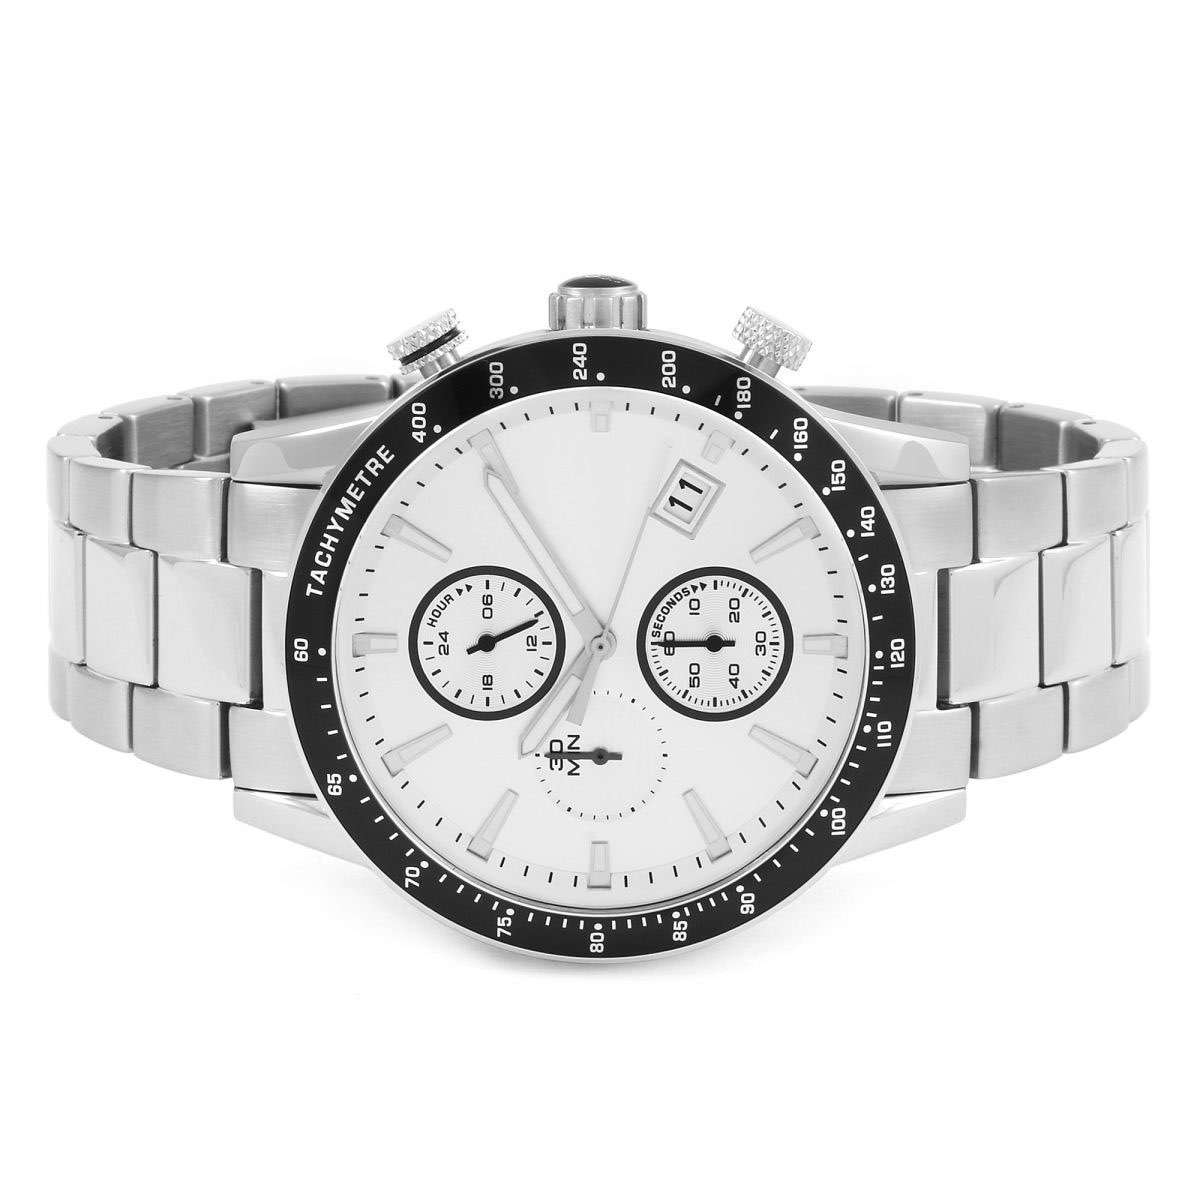 Chronograph Watch Men CM-8023 Customize Watch Top One Watch Manufacturer of Chronograph China